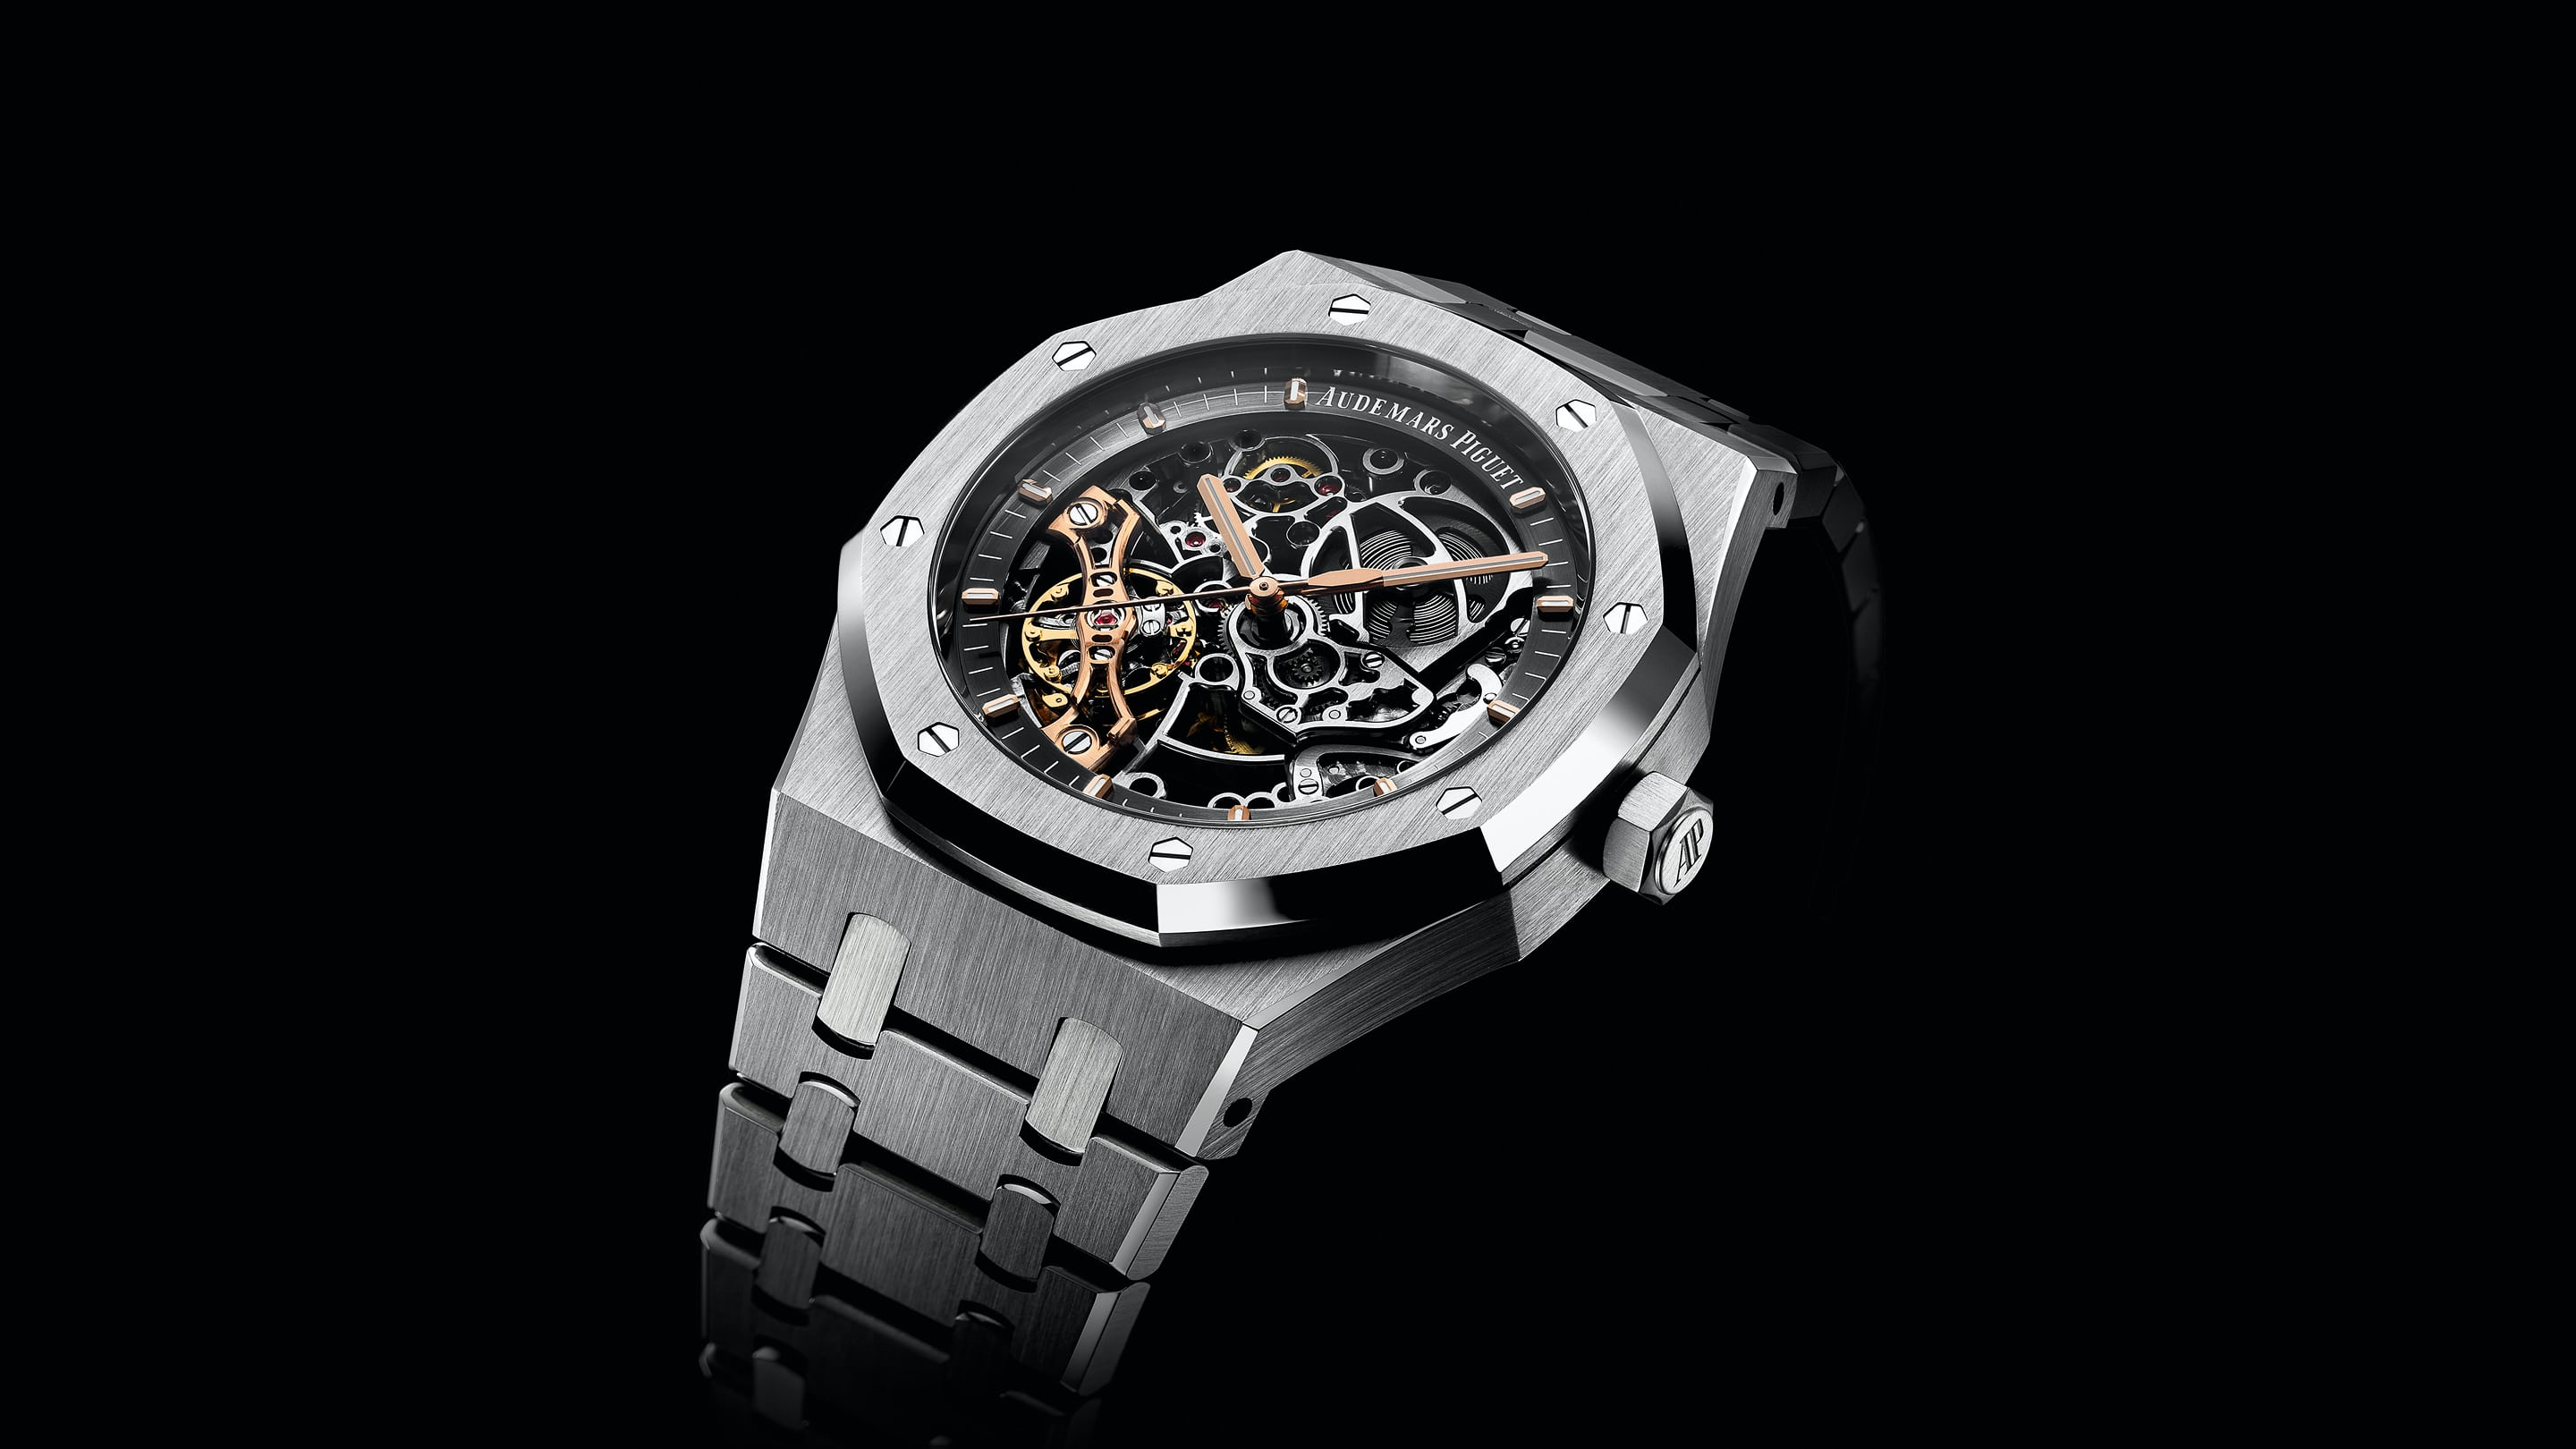 3f59b8ae42 Introducing: The Audemars Piguet Royal Oak Double Balance Wheel Openworked  Reference 15407 - HODINKEE